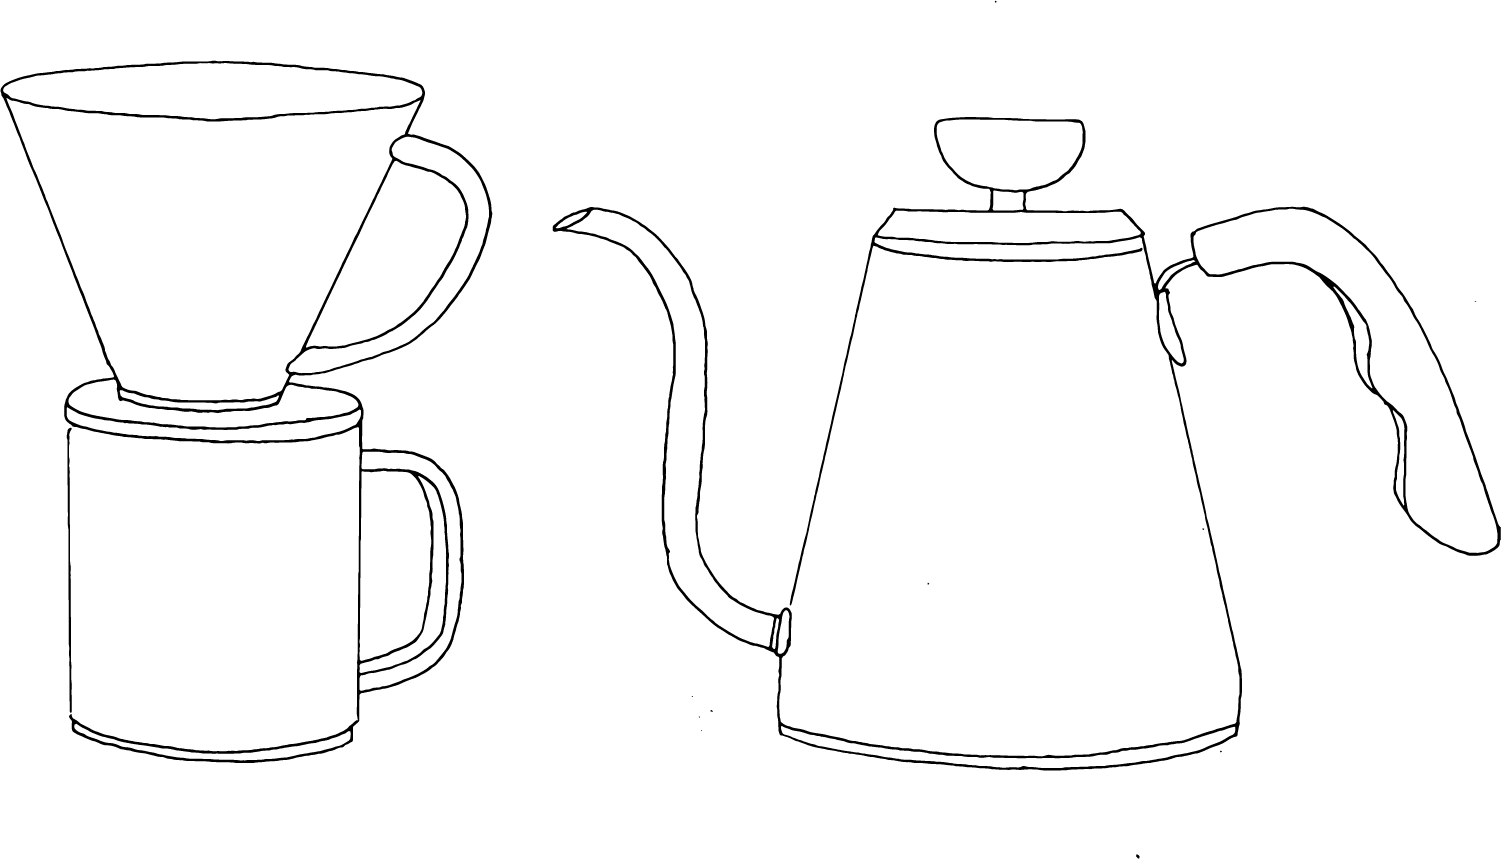 tpc-illustrations-coffeesetup.png